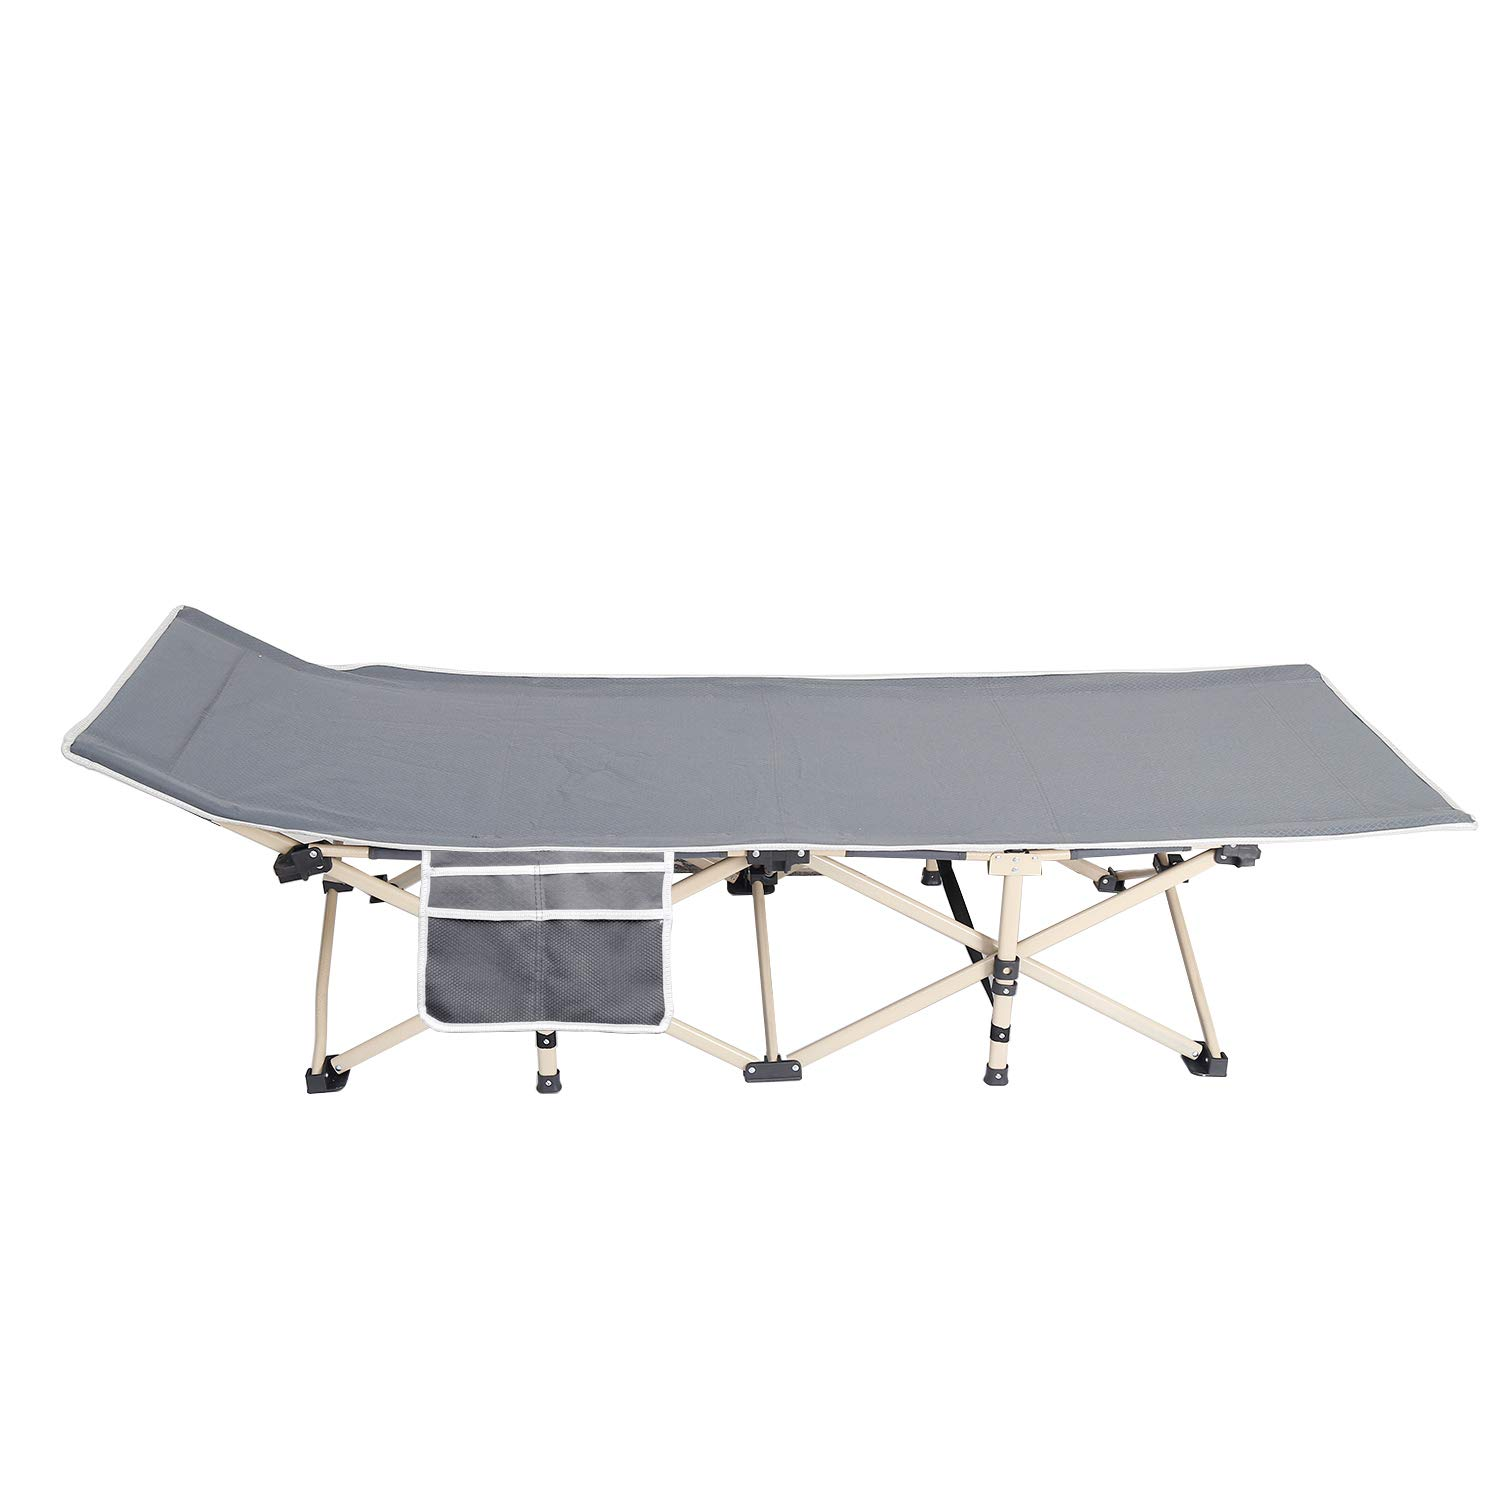 soges Folding Camping Cot with Carry Bag, Portable Bed with Padded Pillow Side Pocked, Light Weight Sleeping Bed, Indoors and Outdoors